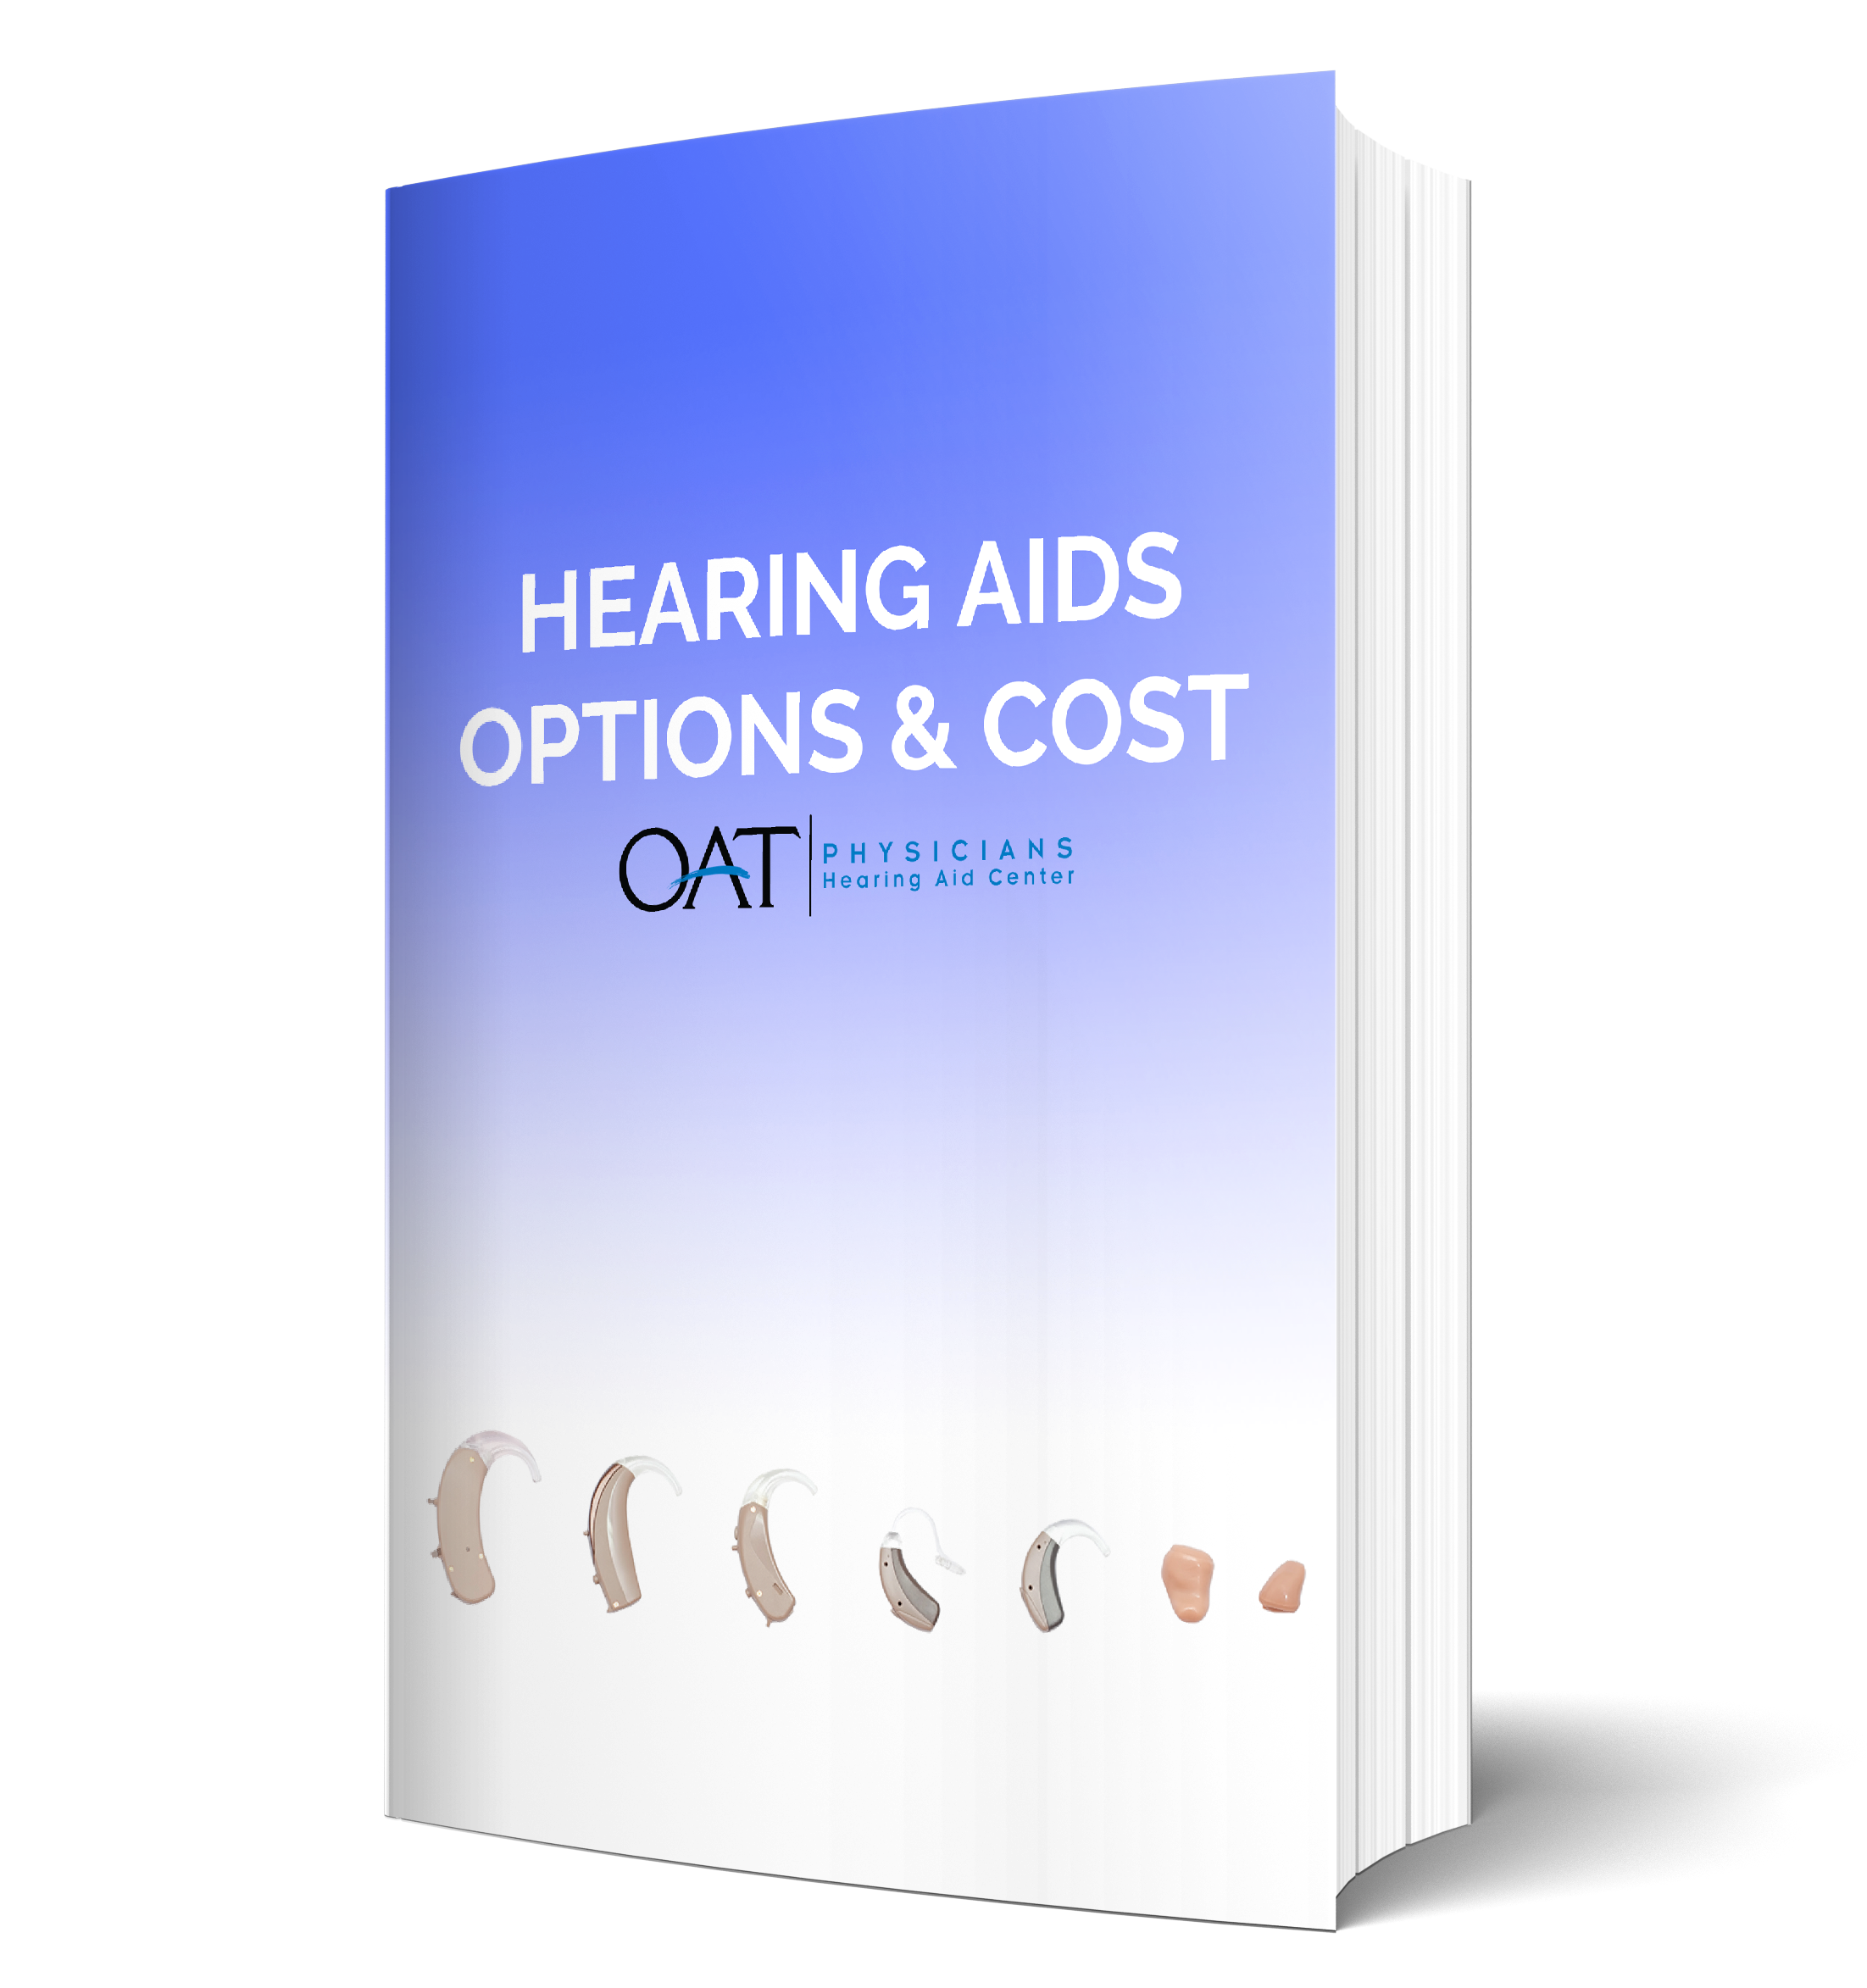 Hearing Aids Options & Cost - eBook Cover.png